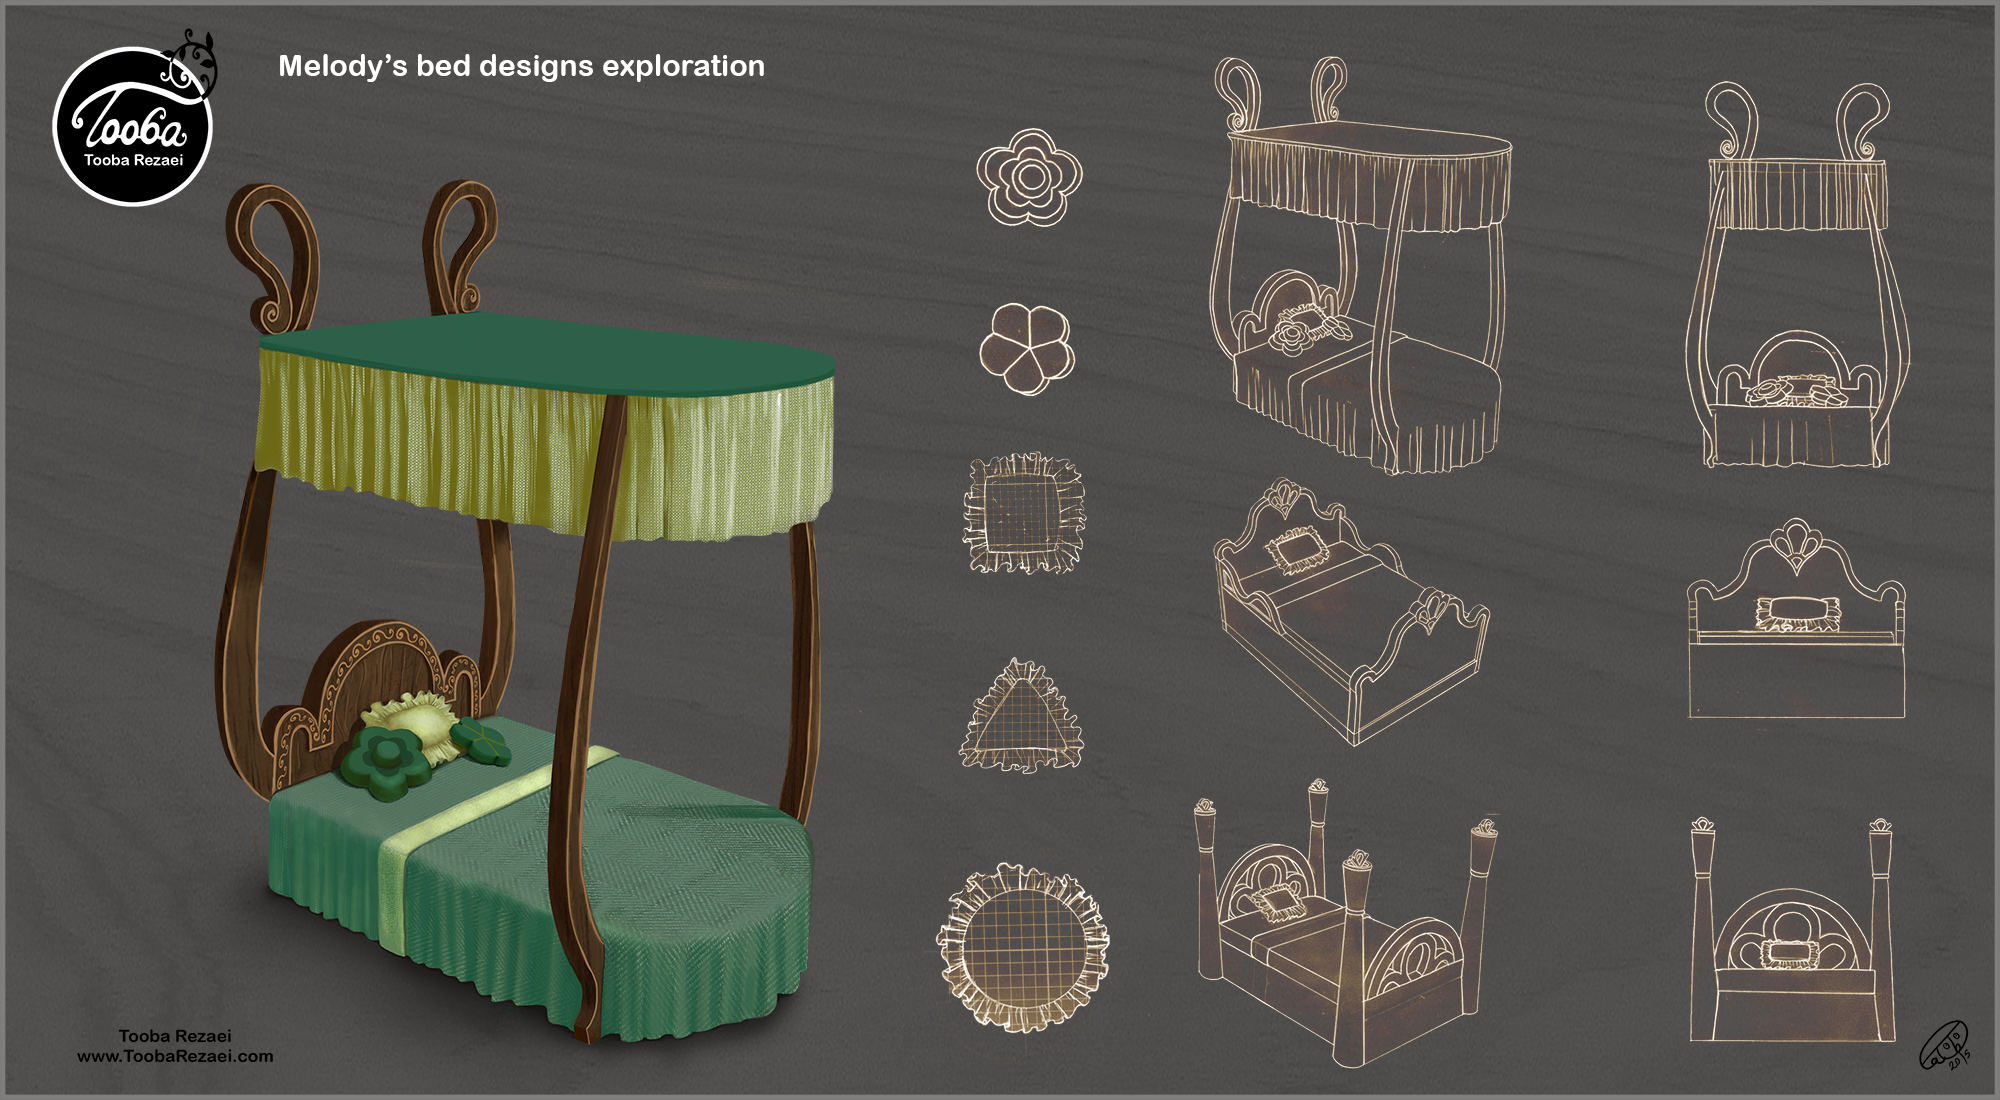 melody-bed-design-exploration.jpg